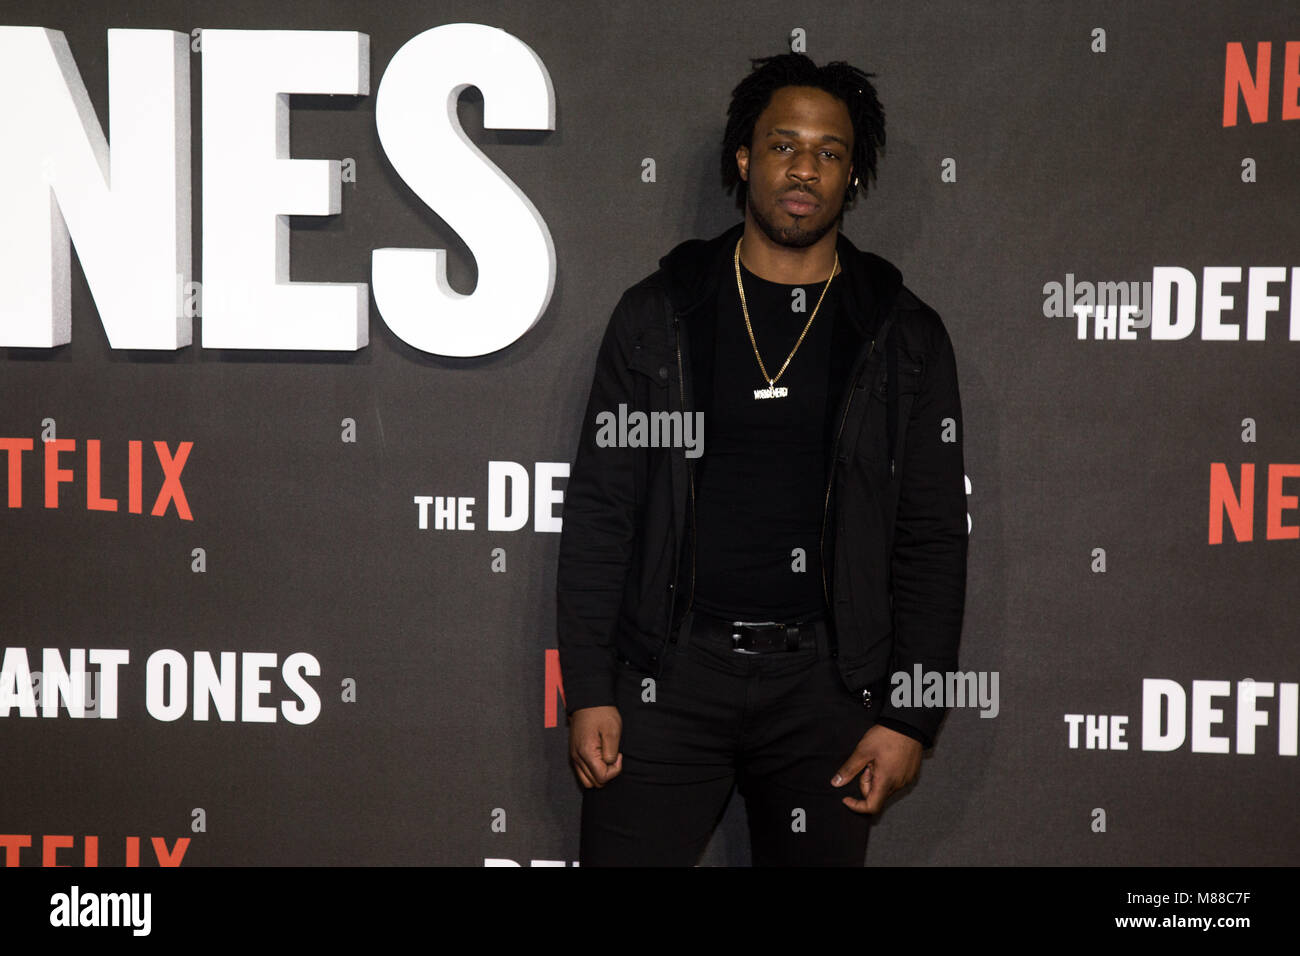 Avelino arrives at The Premiere of Netflix's The Defiant Ones at Ritzy Picturehouse, Brixton. London - 15 March - Stock Image